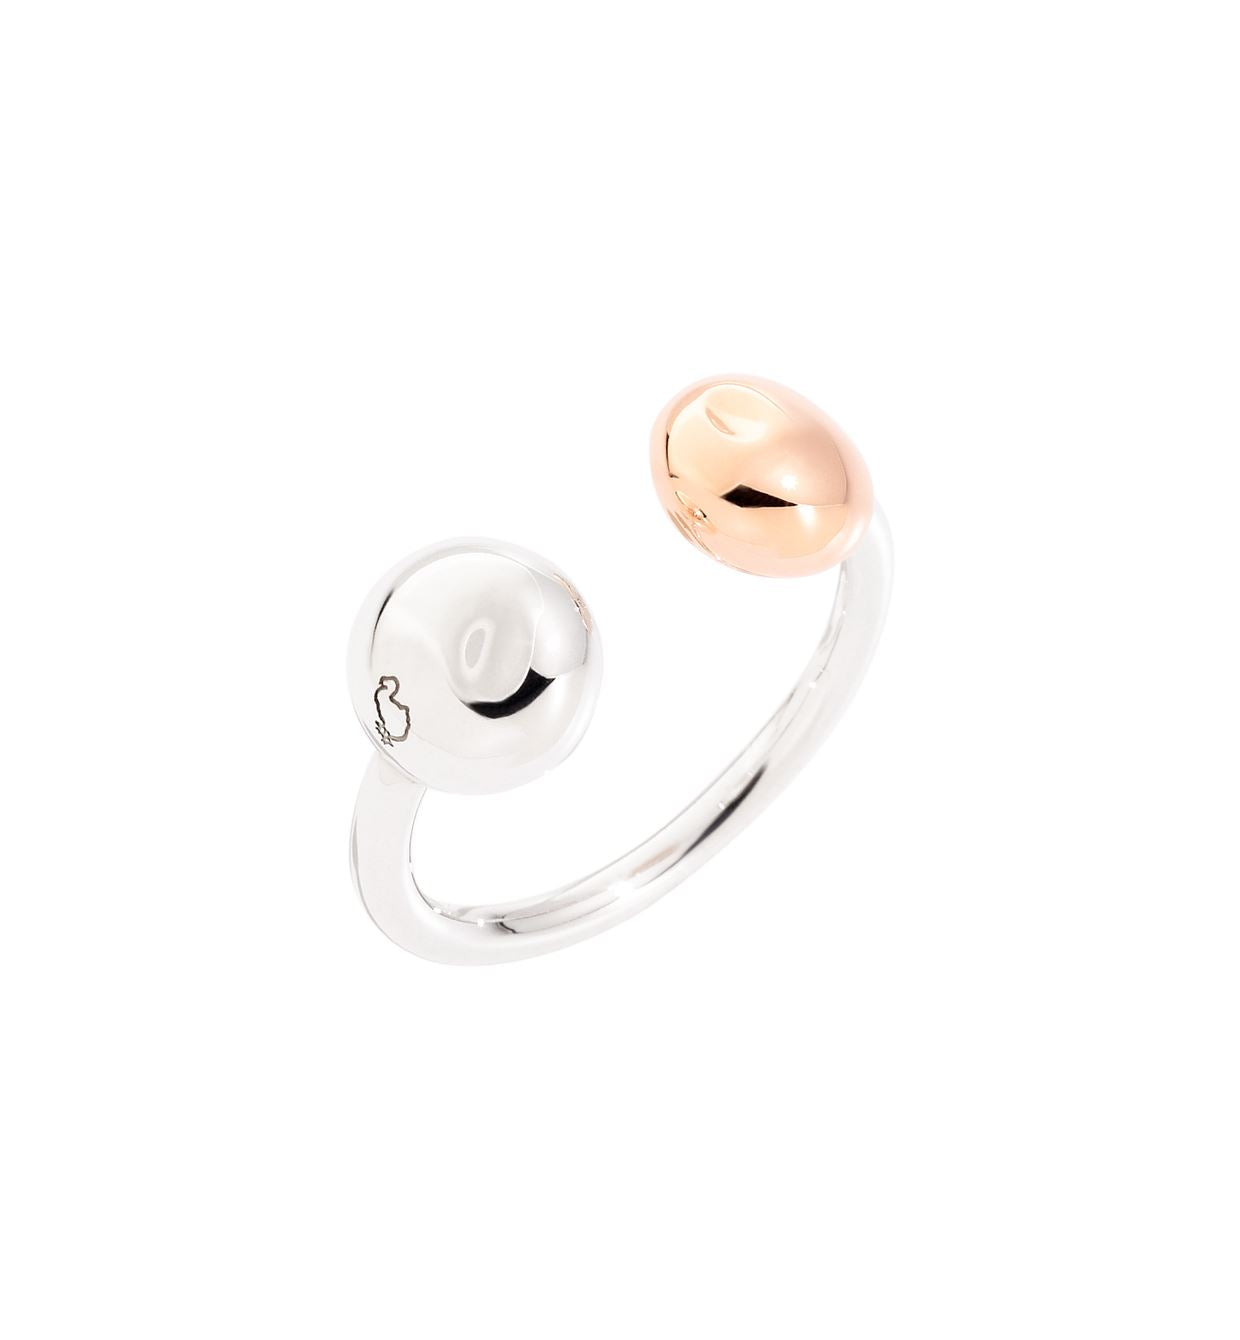 DoDo Pepita Ring in Silver and 9k Rose Gold - Orsini Jewellers NZ